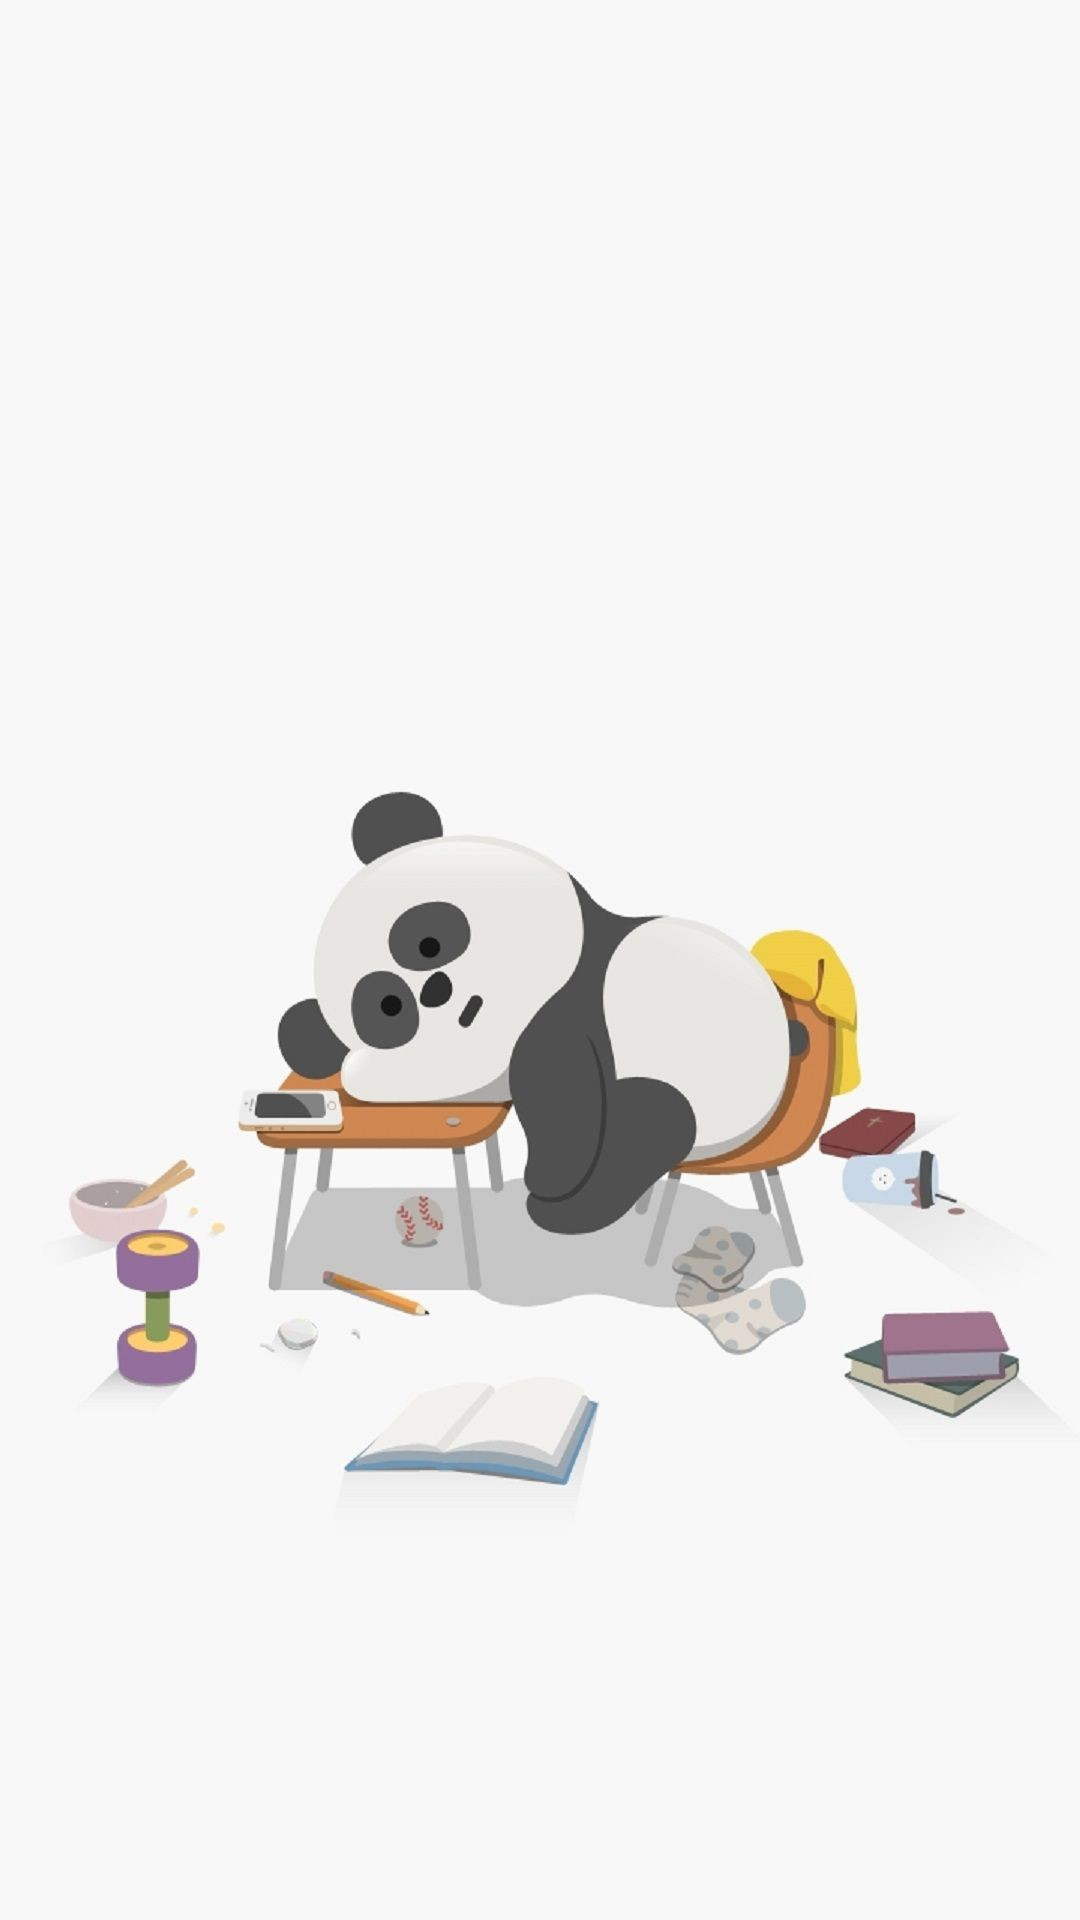 Res: 1080x1920, Cute Sleepy Panda. Cute Animal iPhone wallpapers. Tap to see more high  quality iphone wallpapers, backgrounds, fondos! - @mobile9